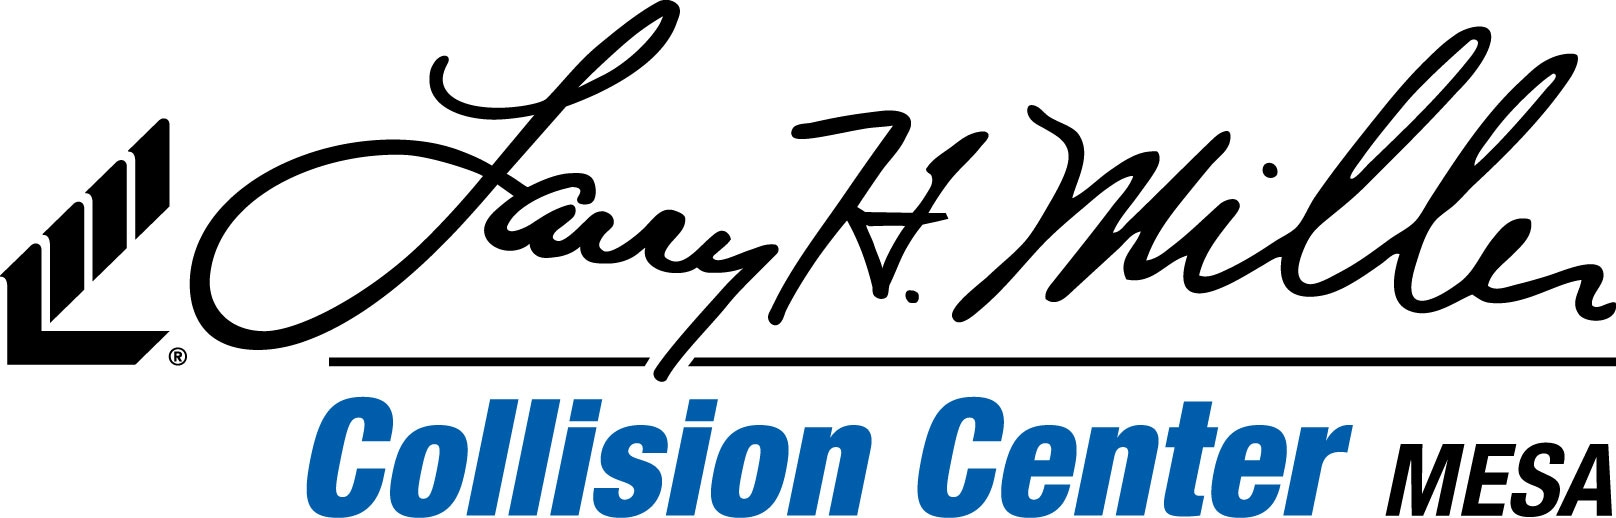 Larry H. Miller Collision Center, Mesa